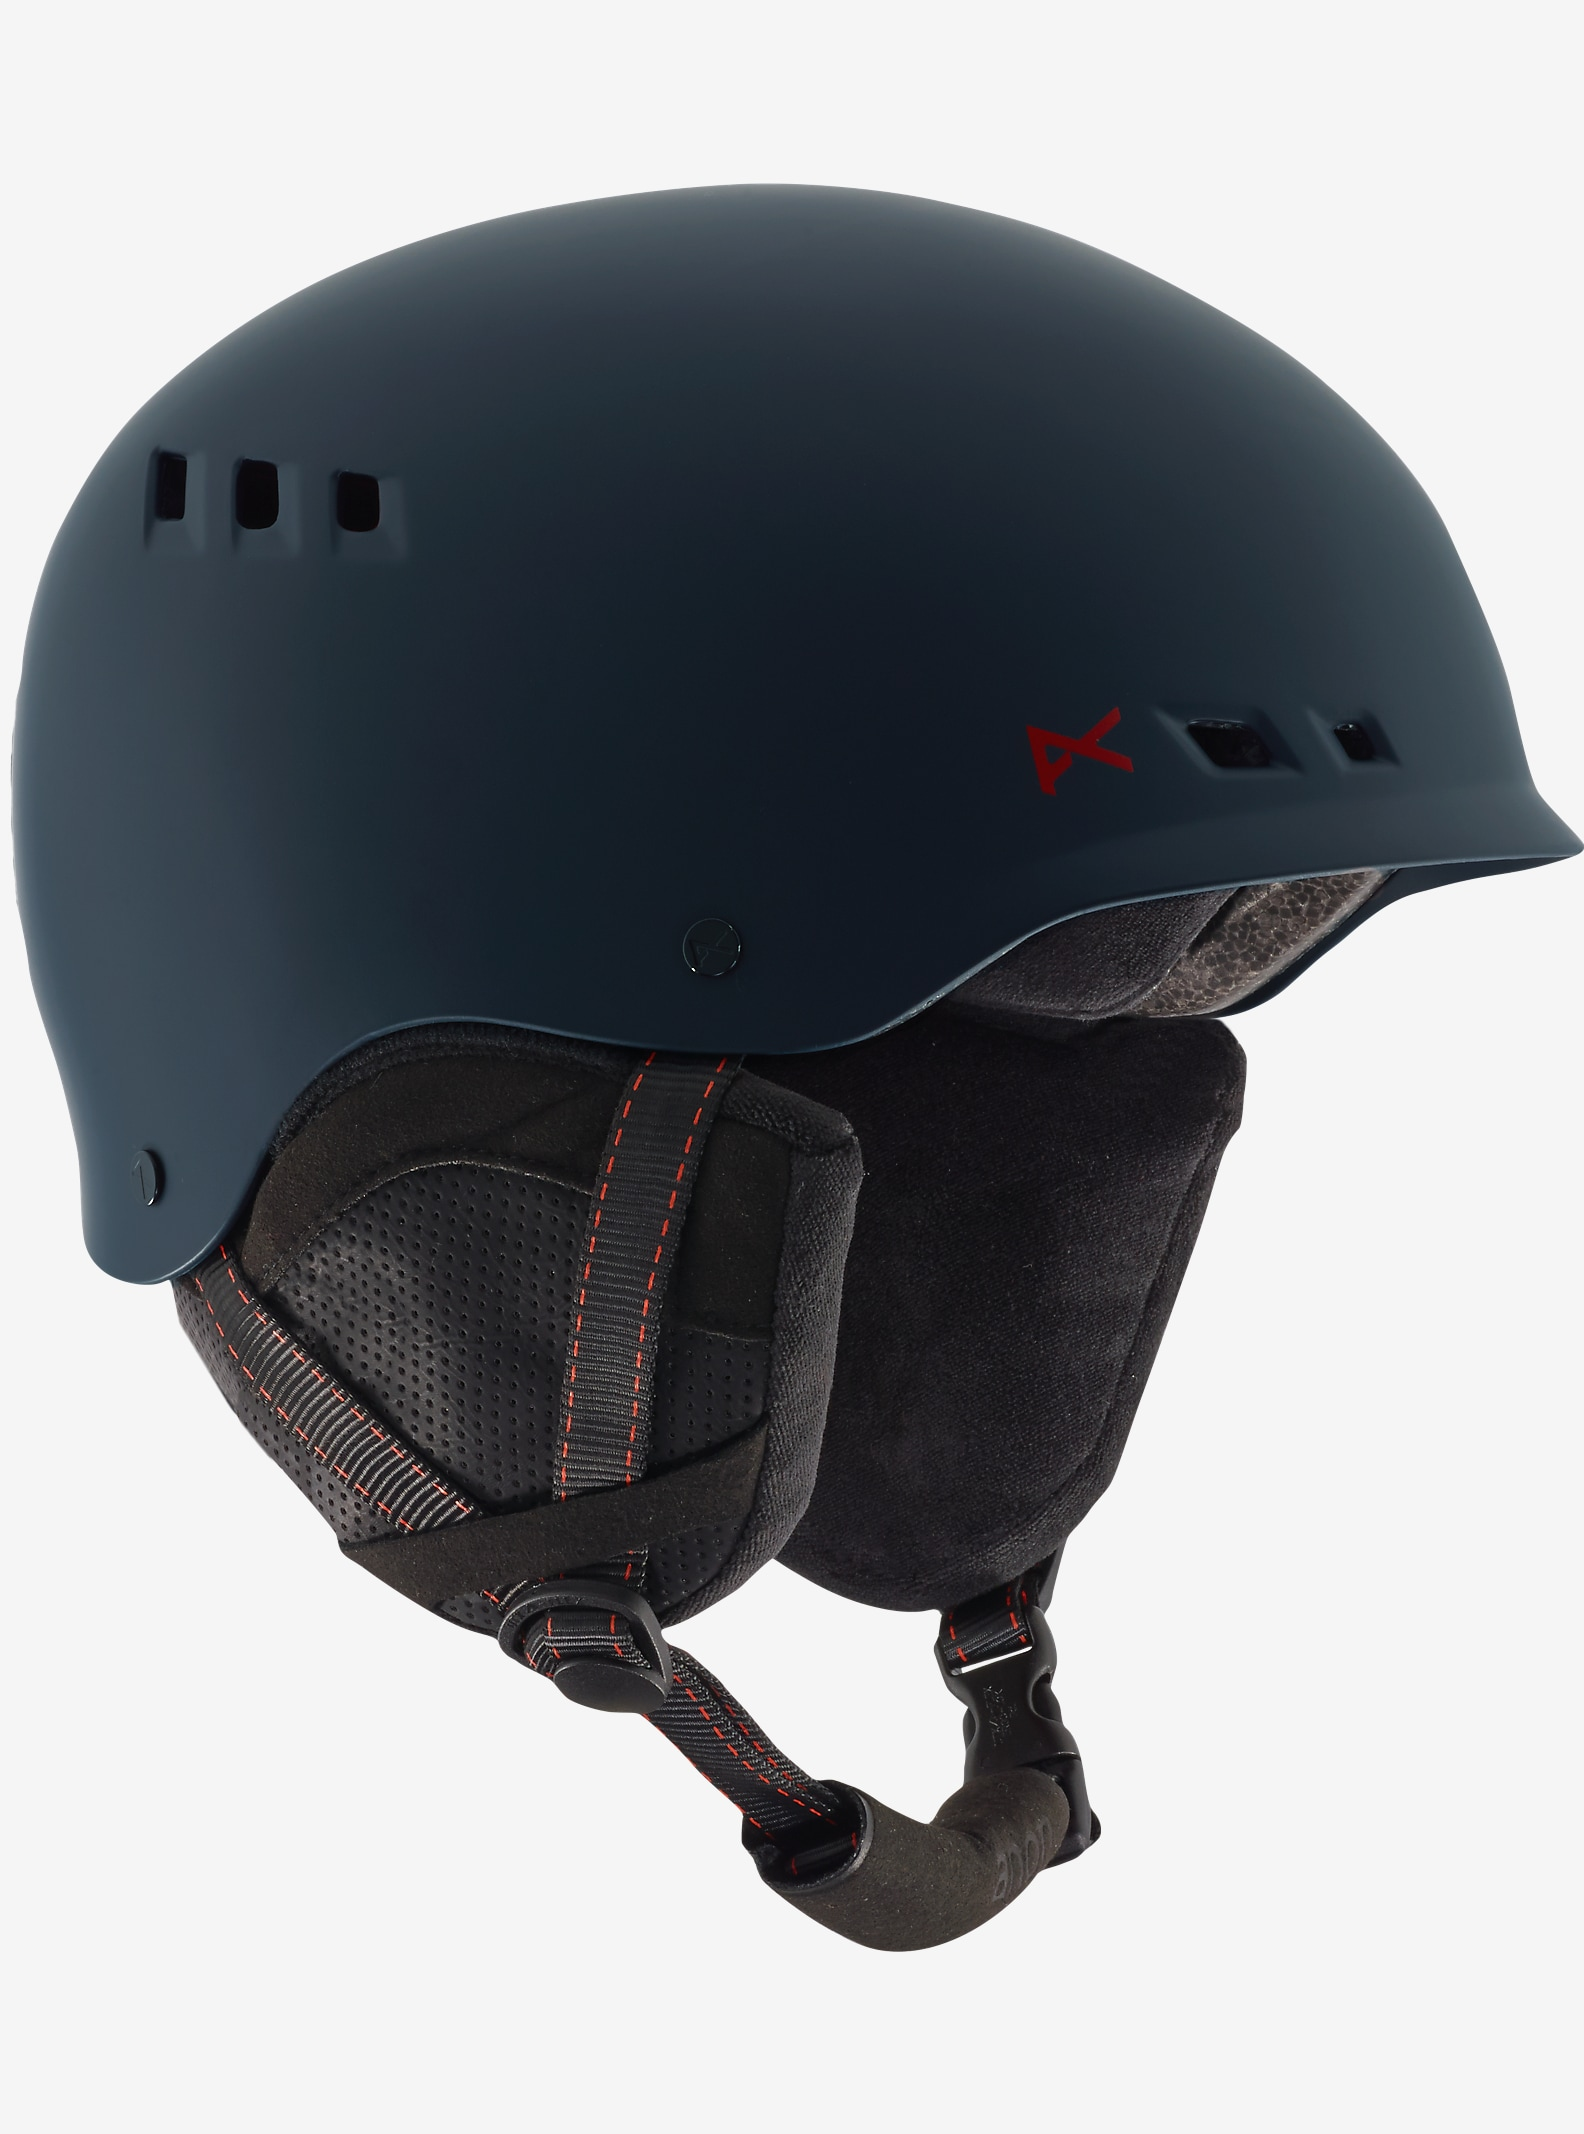 anon. Talan Helmet shown in Dark Blue